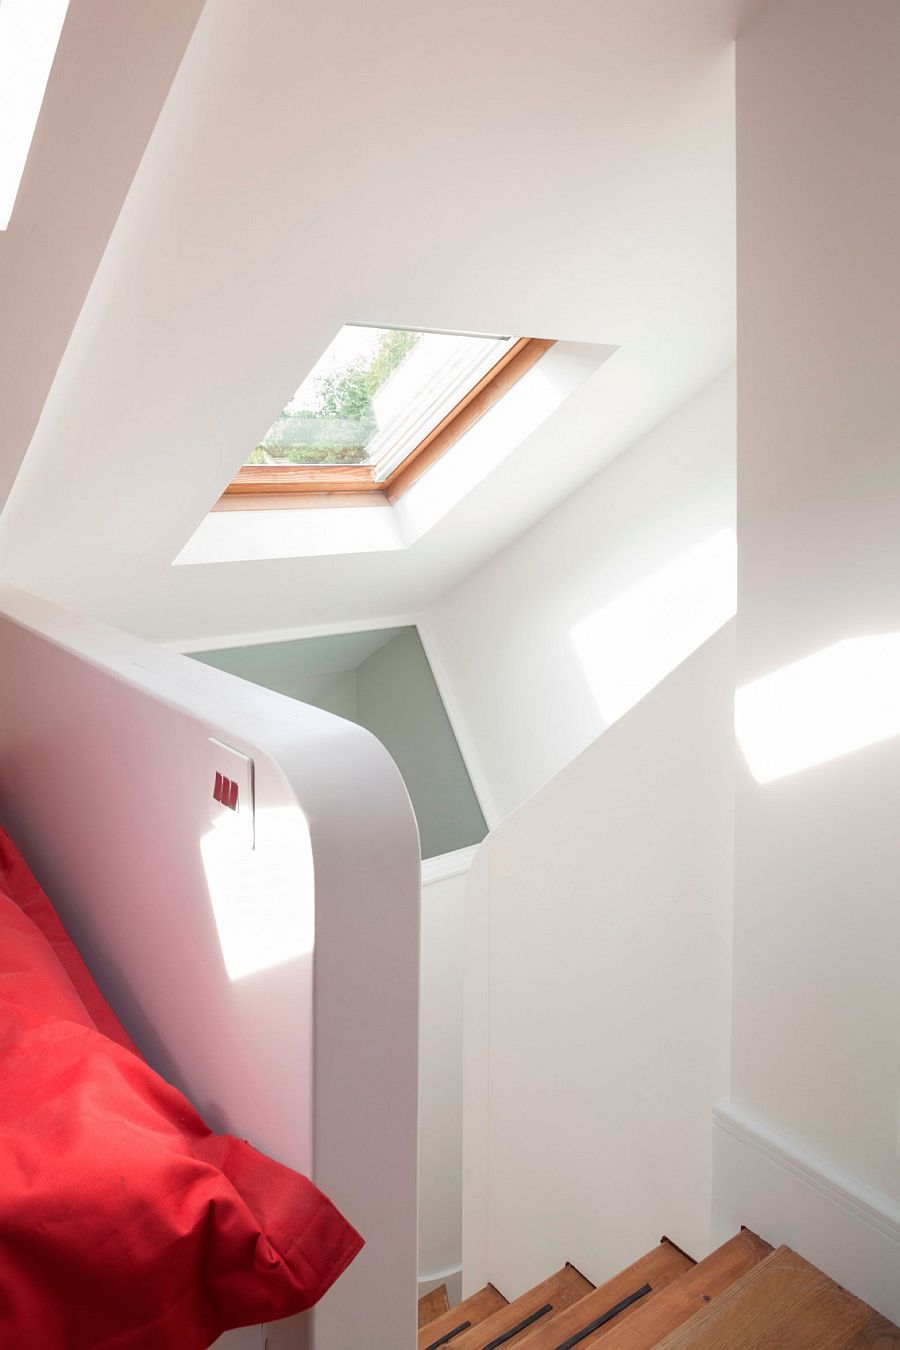 Smartly placed windows and skylights illuminate the loft space